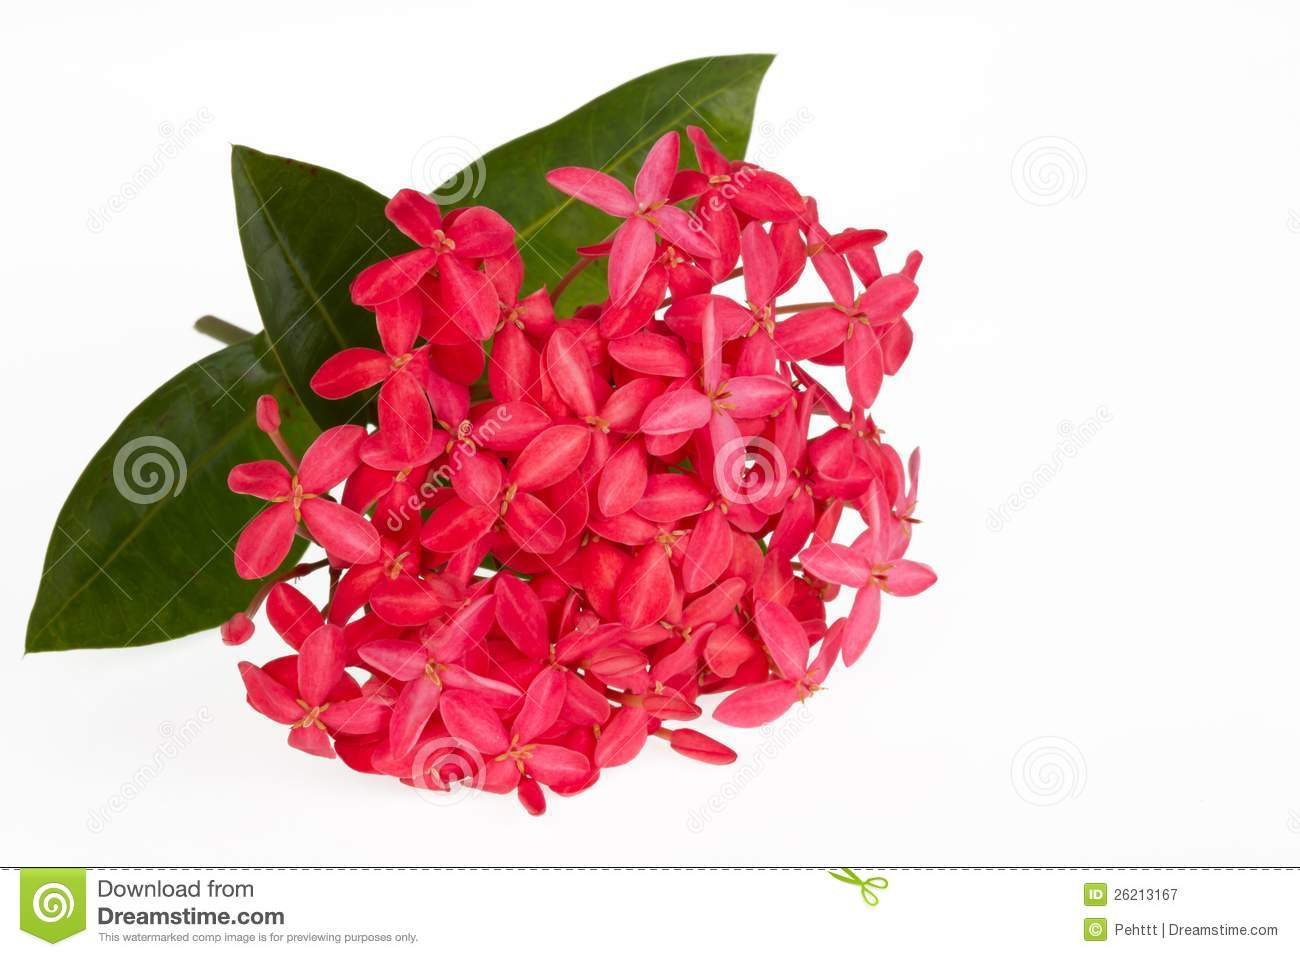 Ixora Flower Stock Photos, Images, & Pictures.